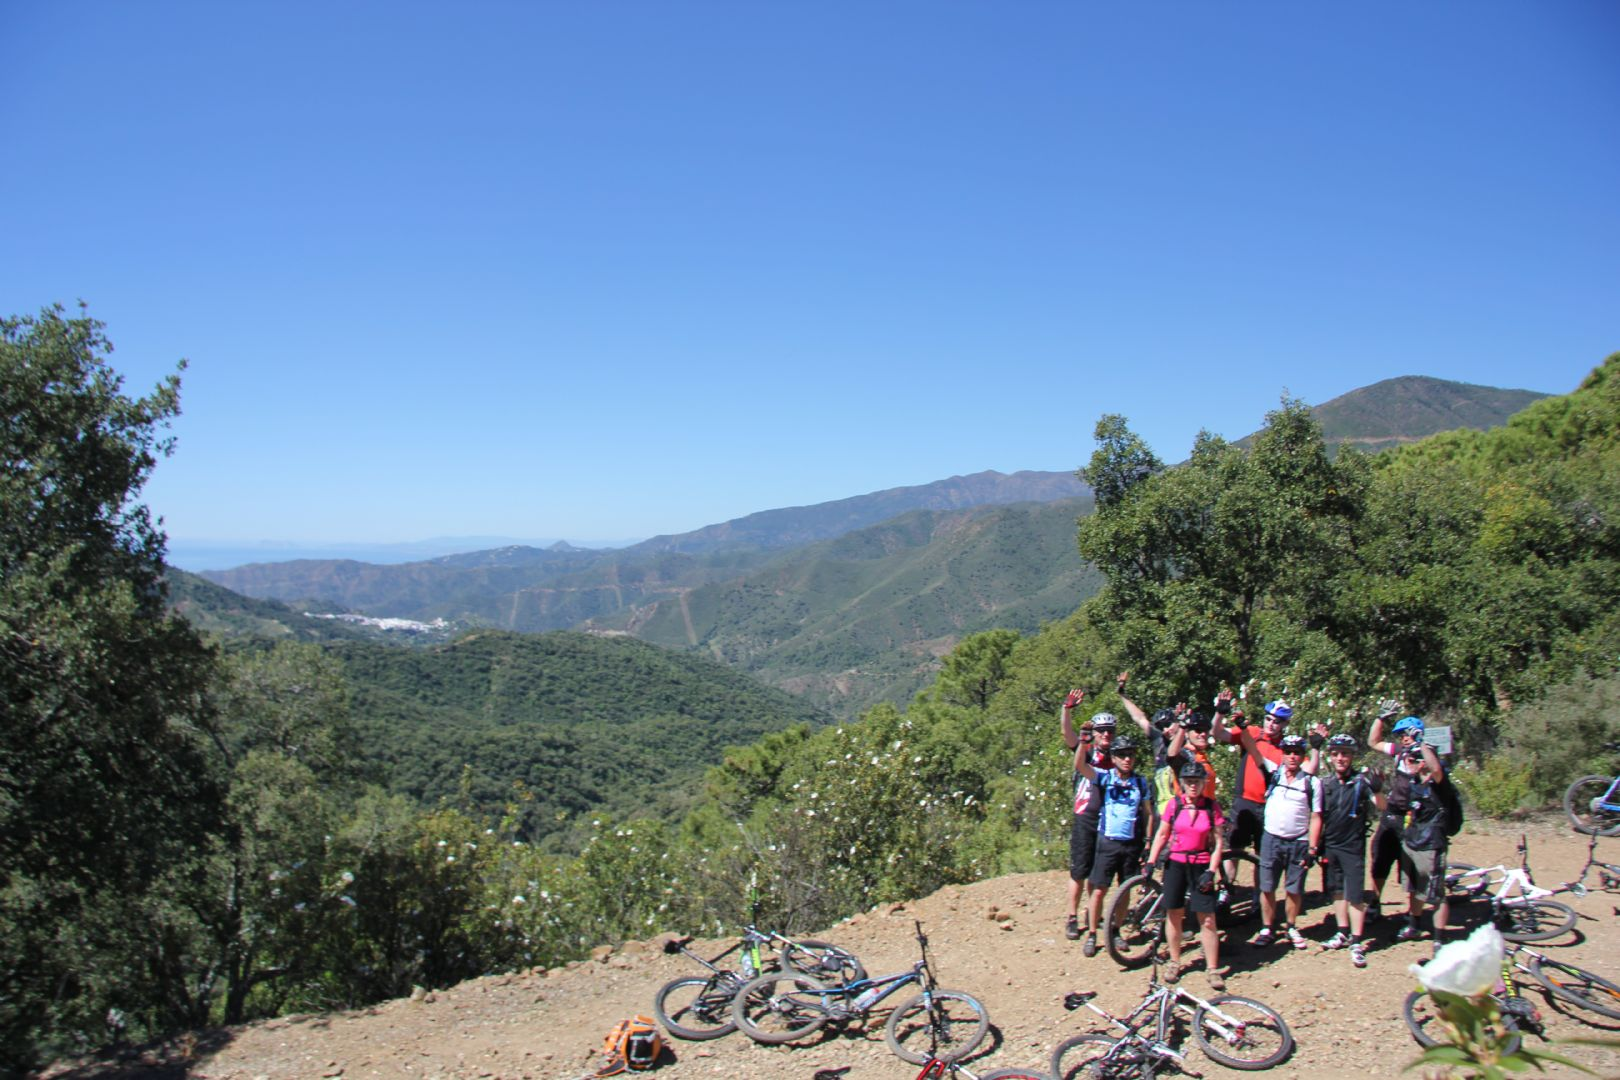 IMG_9062.JPG - Spain - Awesome Andalucia - Guided Mountain Bike Holiday - Mountain Biking